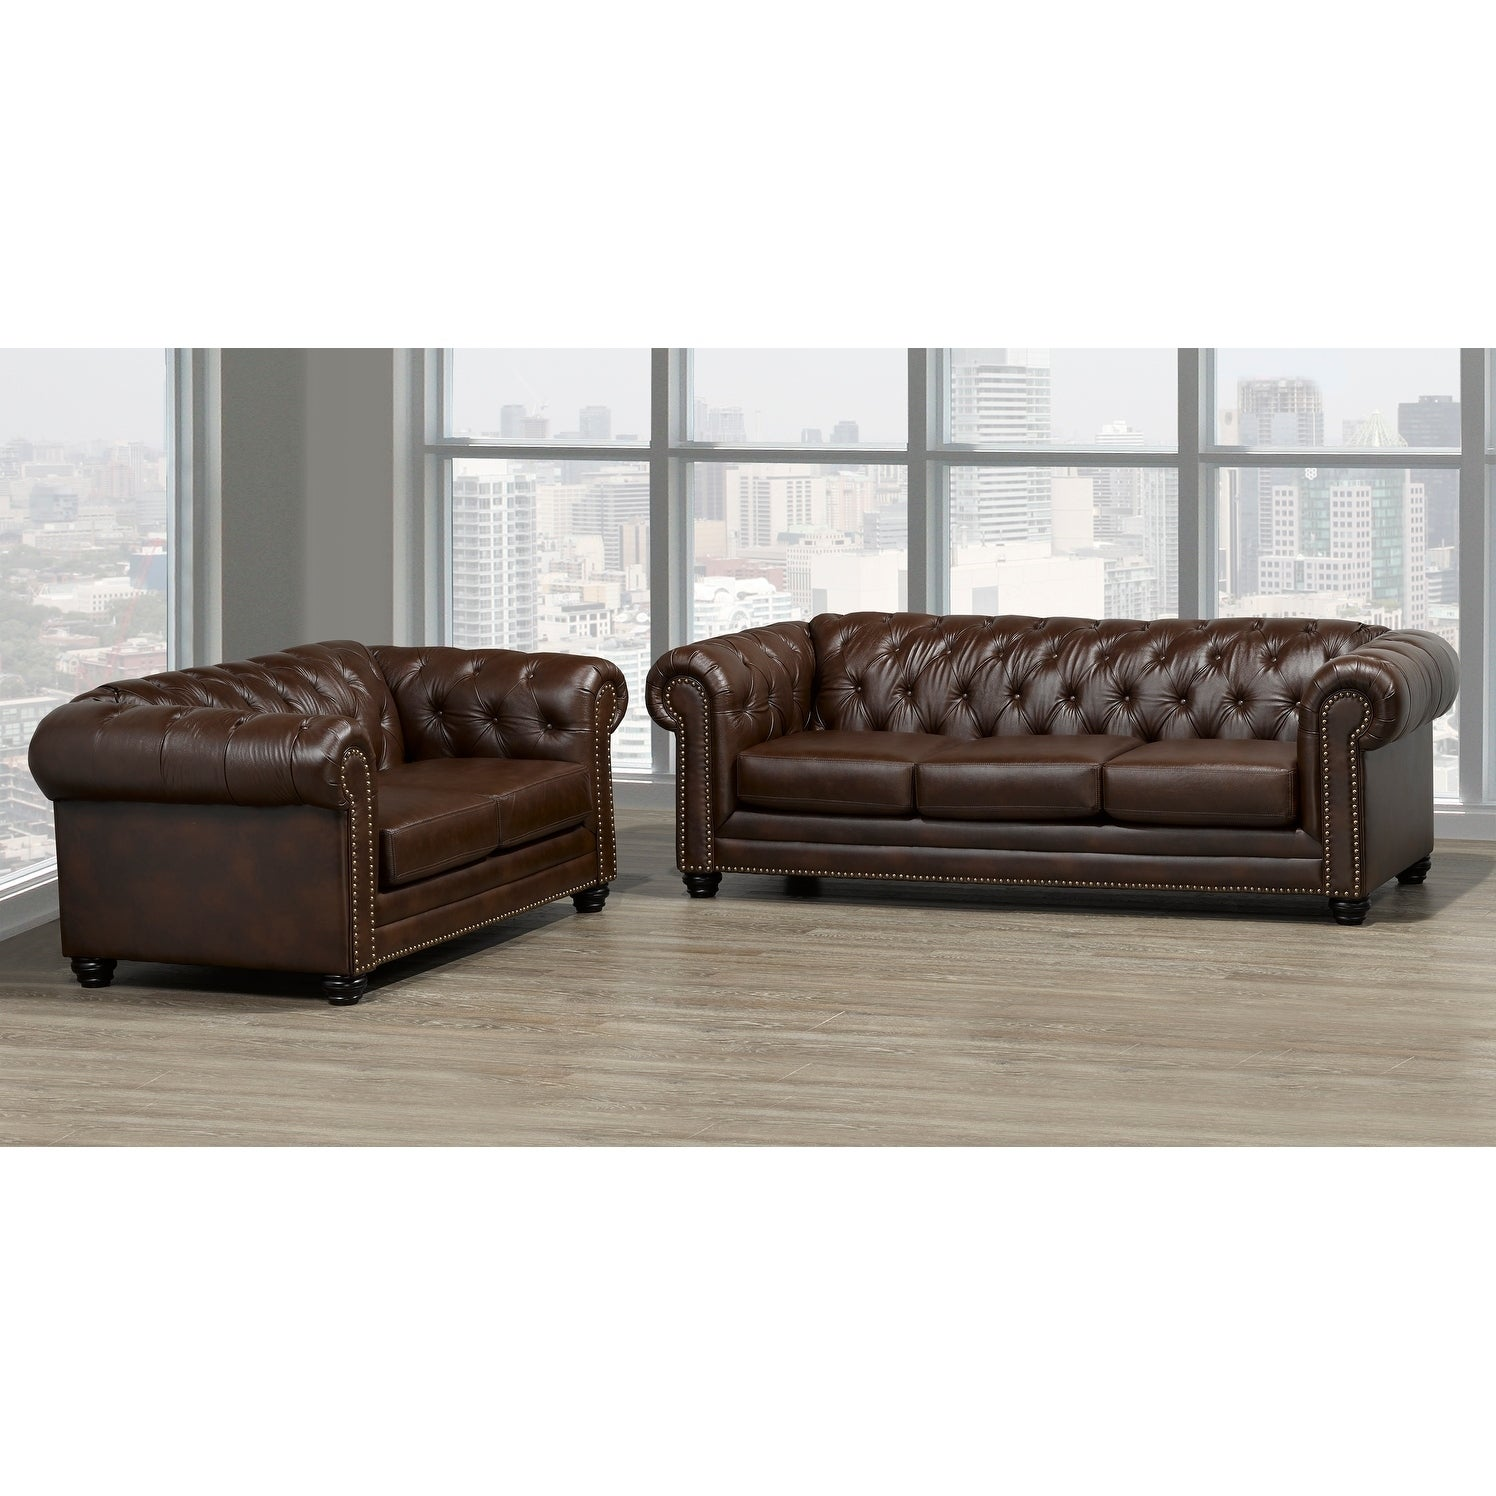 Maryport Top Grain Leather Sofa And Loveseat Set